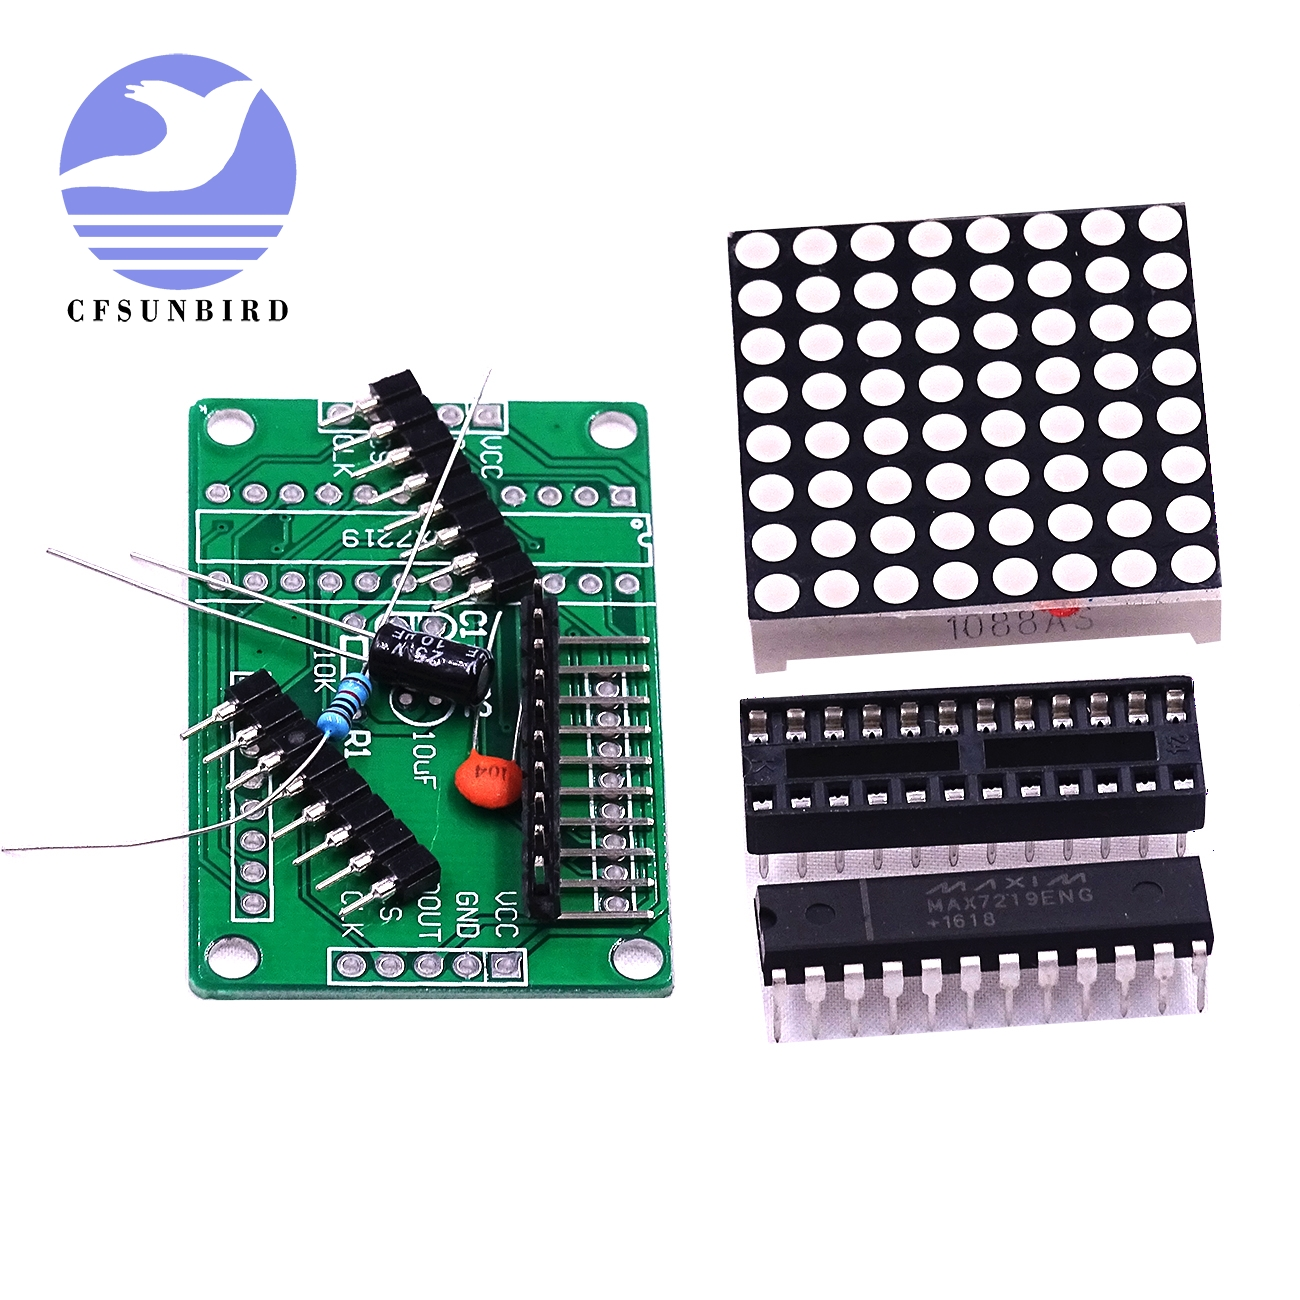 MAX7219 LED 8x8 Dot Matrix Display Module MCU control for Arduino DIY